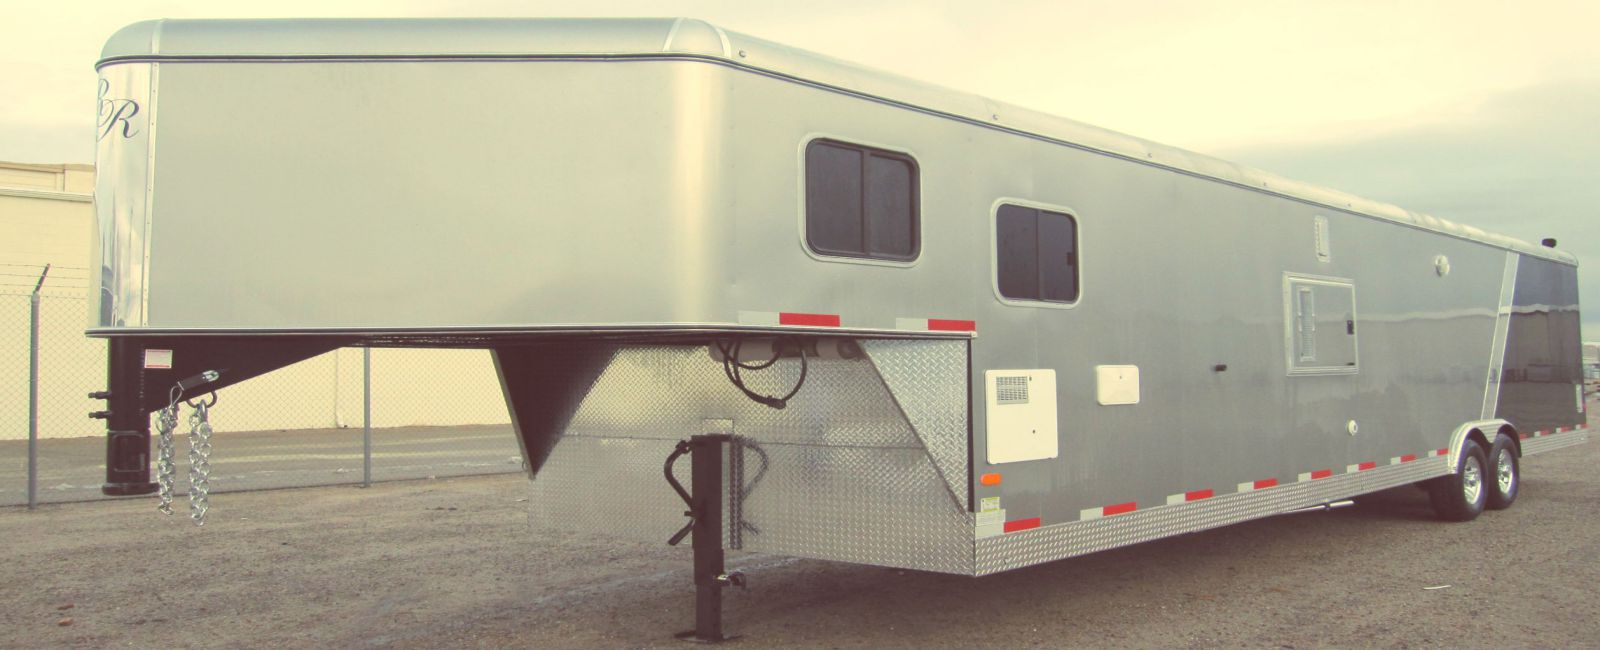 hight resolution of specialty trailers toy hauler